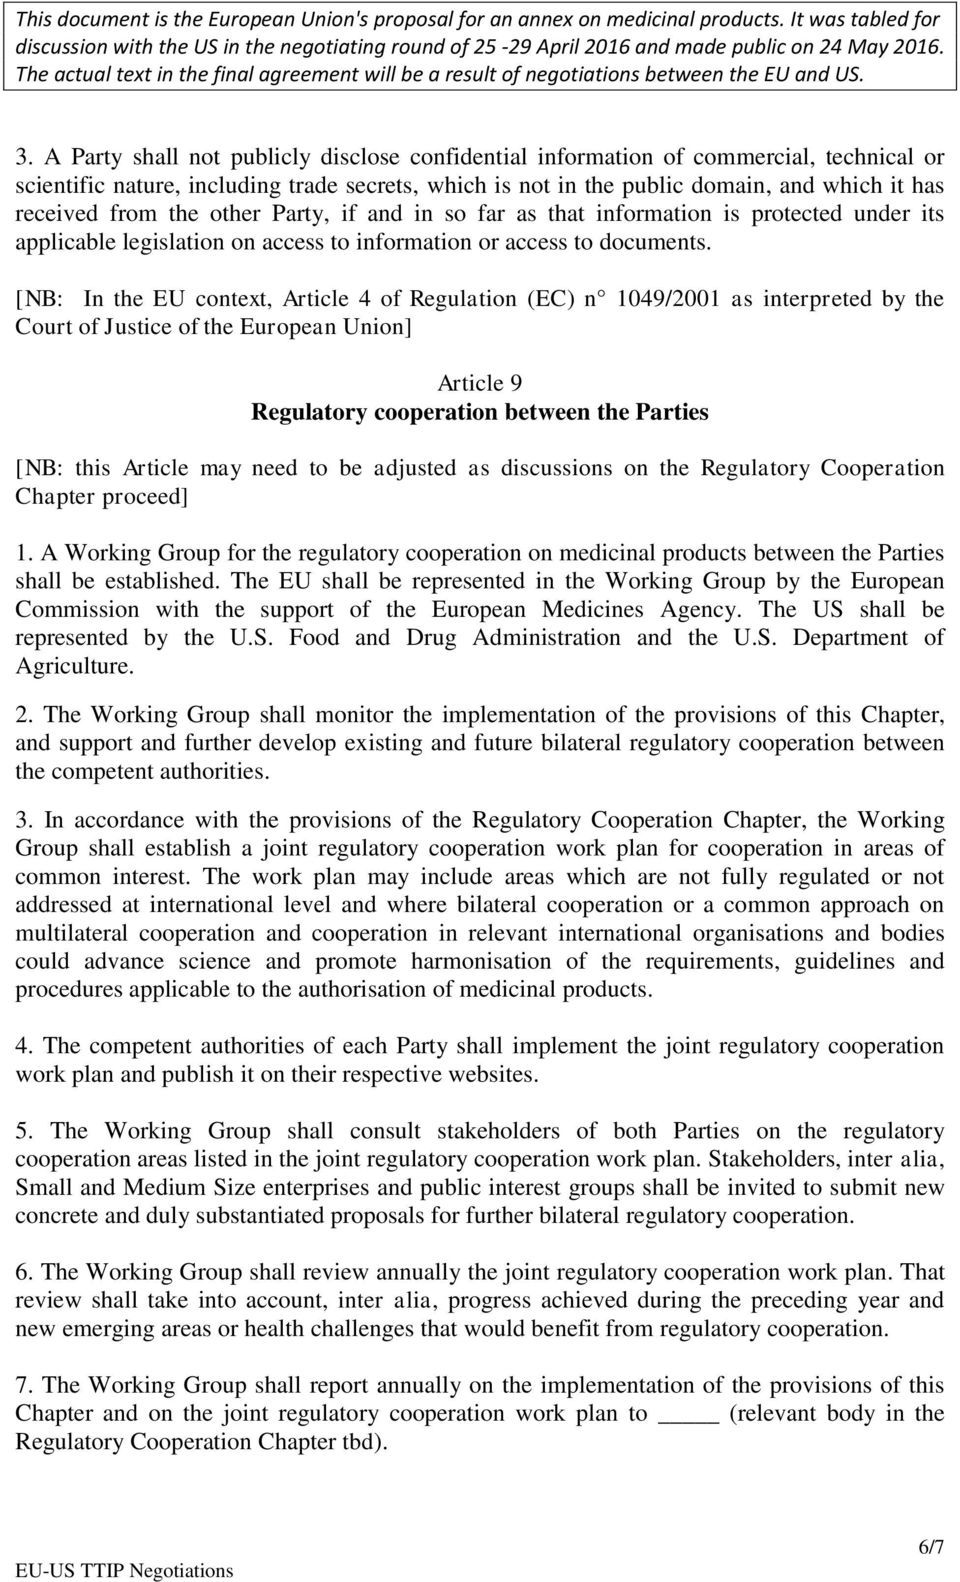 [NB: In the EU context, Article 4 of Regulation (EC) n 1049/2001 as interpreted by the Court of Justice of the European Union] Article 9 Regulatory cooperation between the Parties [NB: this Article